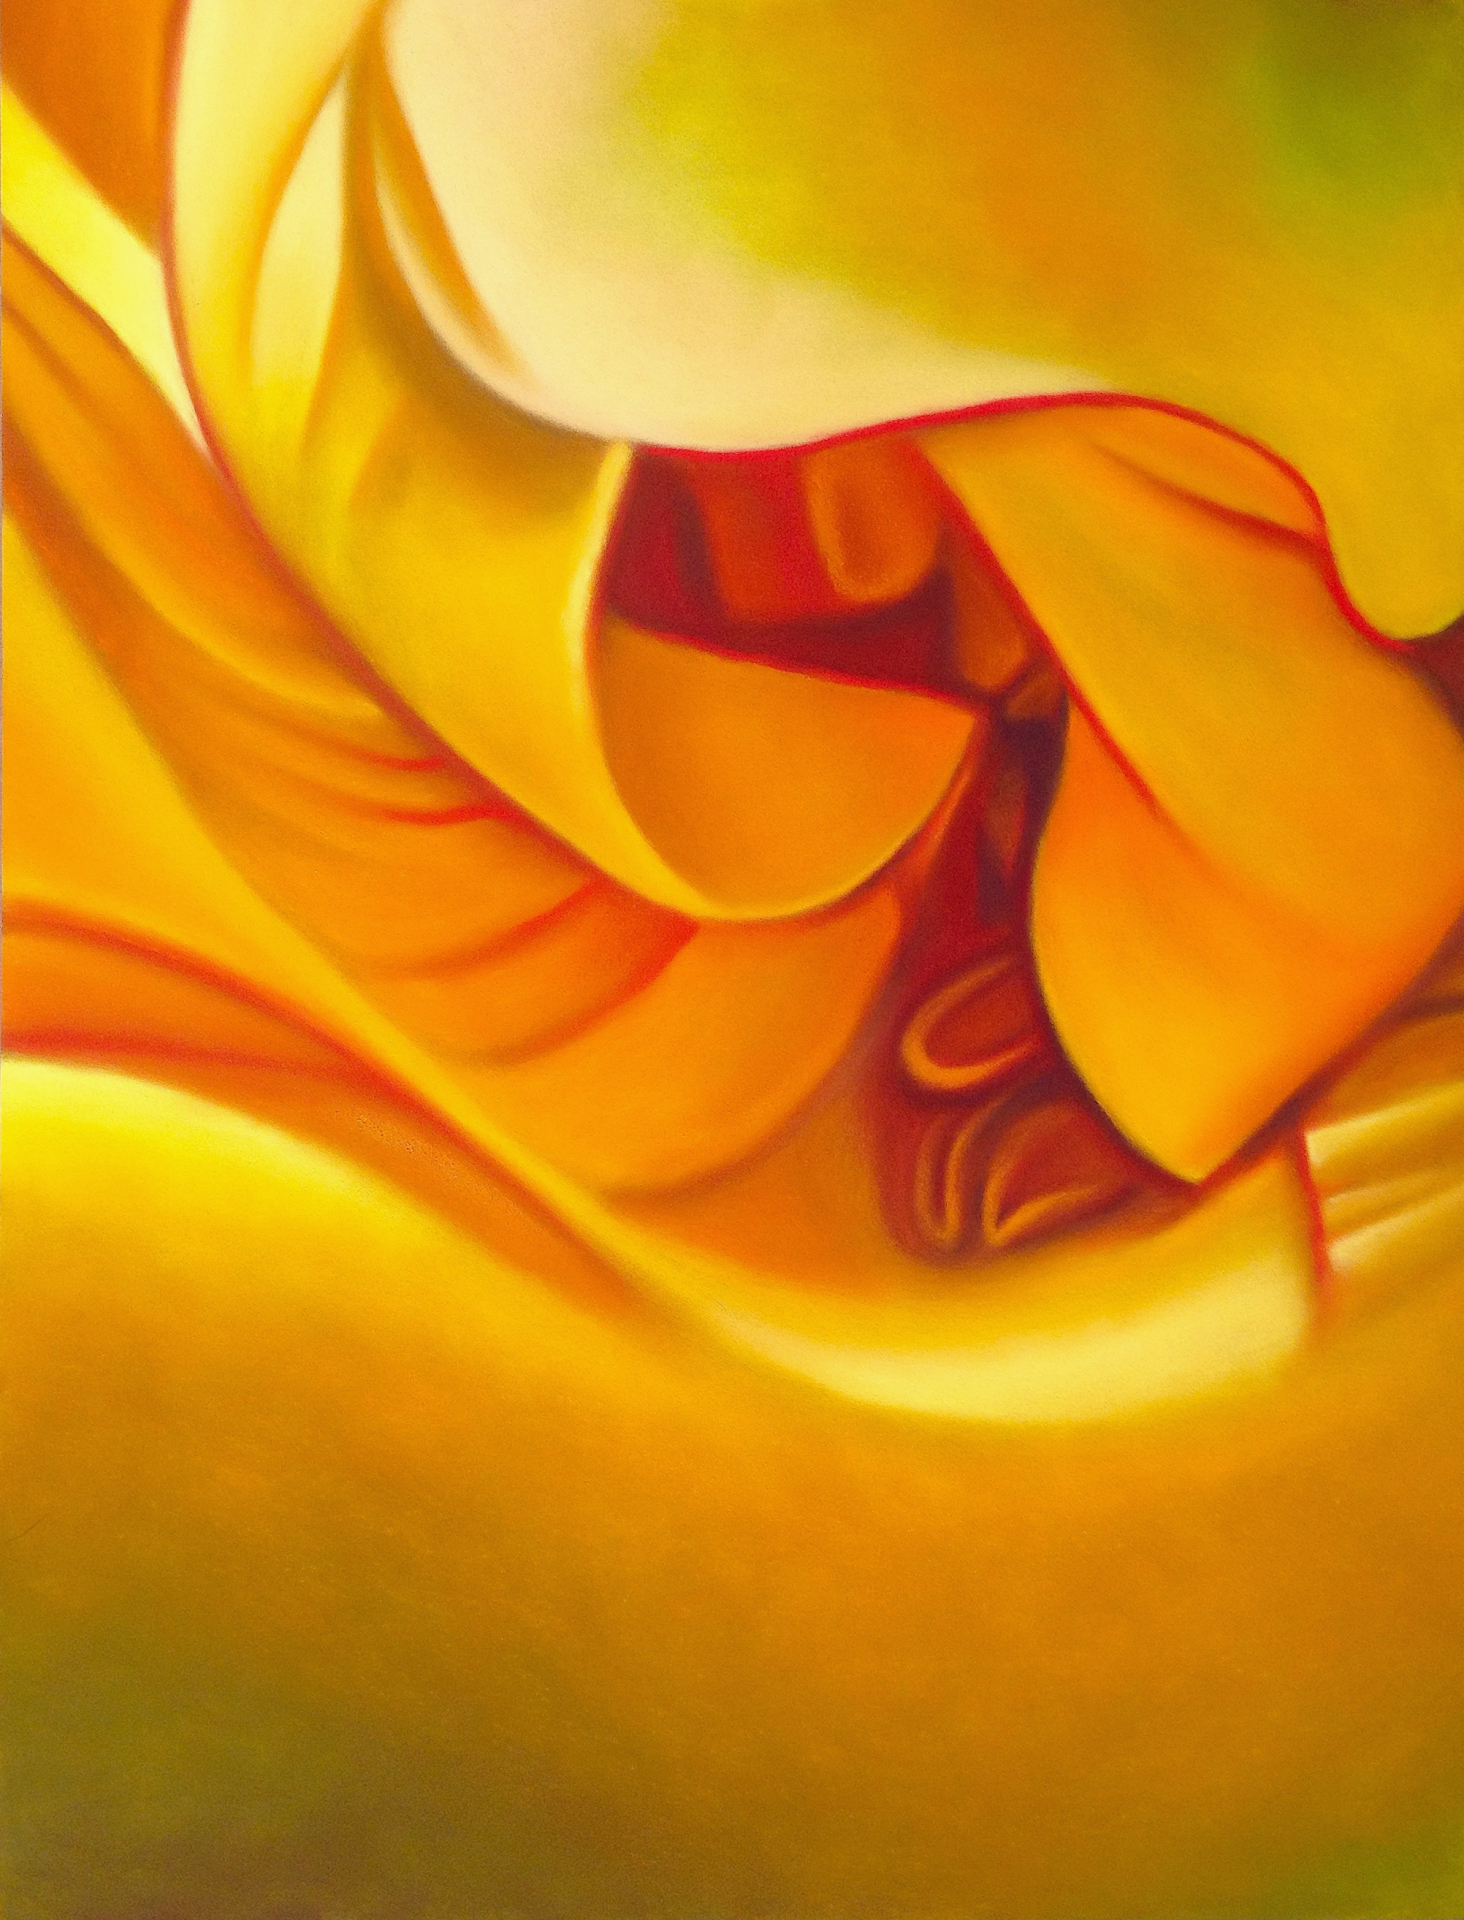 yellow rose abstract #1